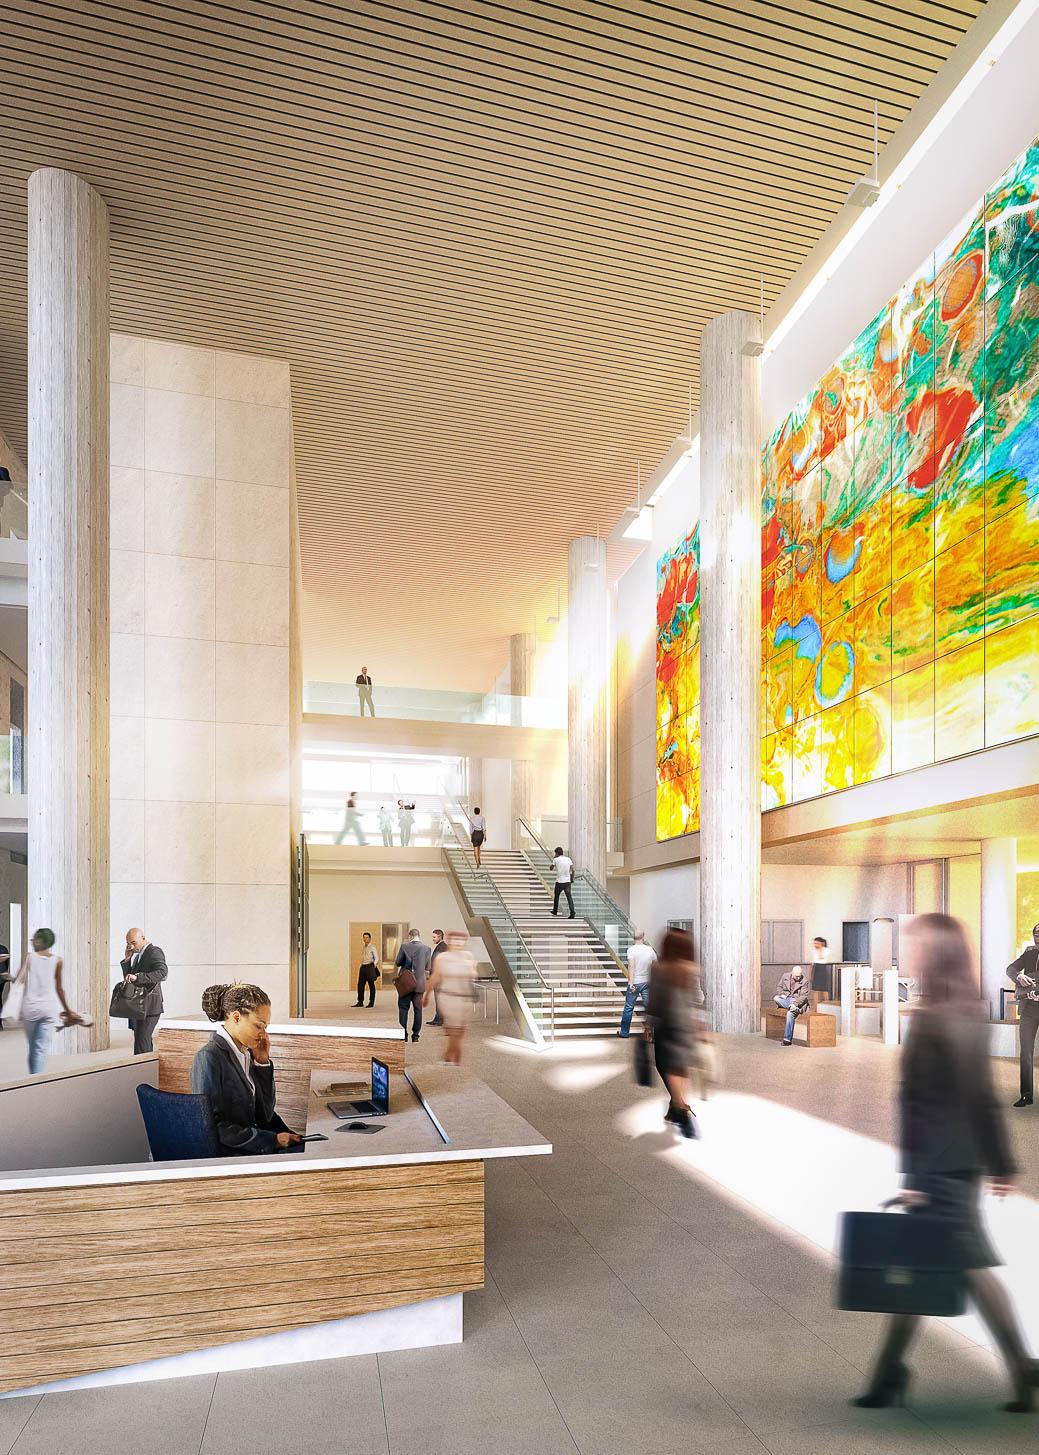 Rendering of Lynn Basa's glass artwork for the new Multnomah County Central Courthouse in Portland, Oregon. Fabrication by Bullseye Studio, project funding by Multnomah County Percent for Art, and project management by Regional Arts & Culture Council (RACC). Image courtesy of SRG Partnership.